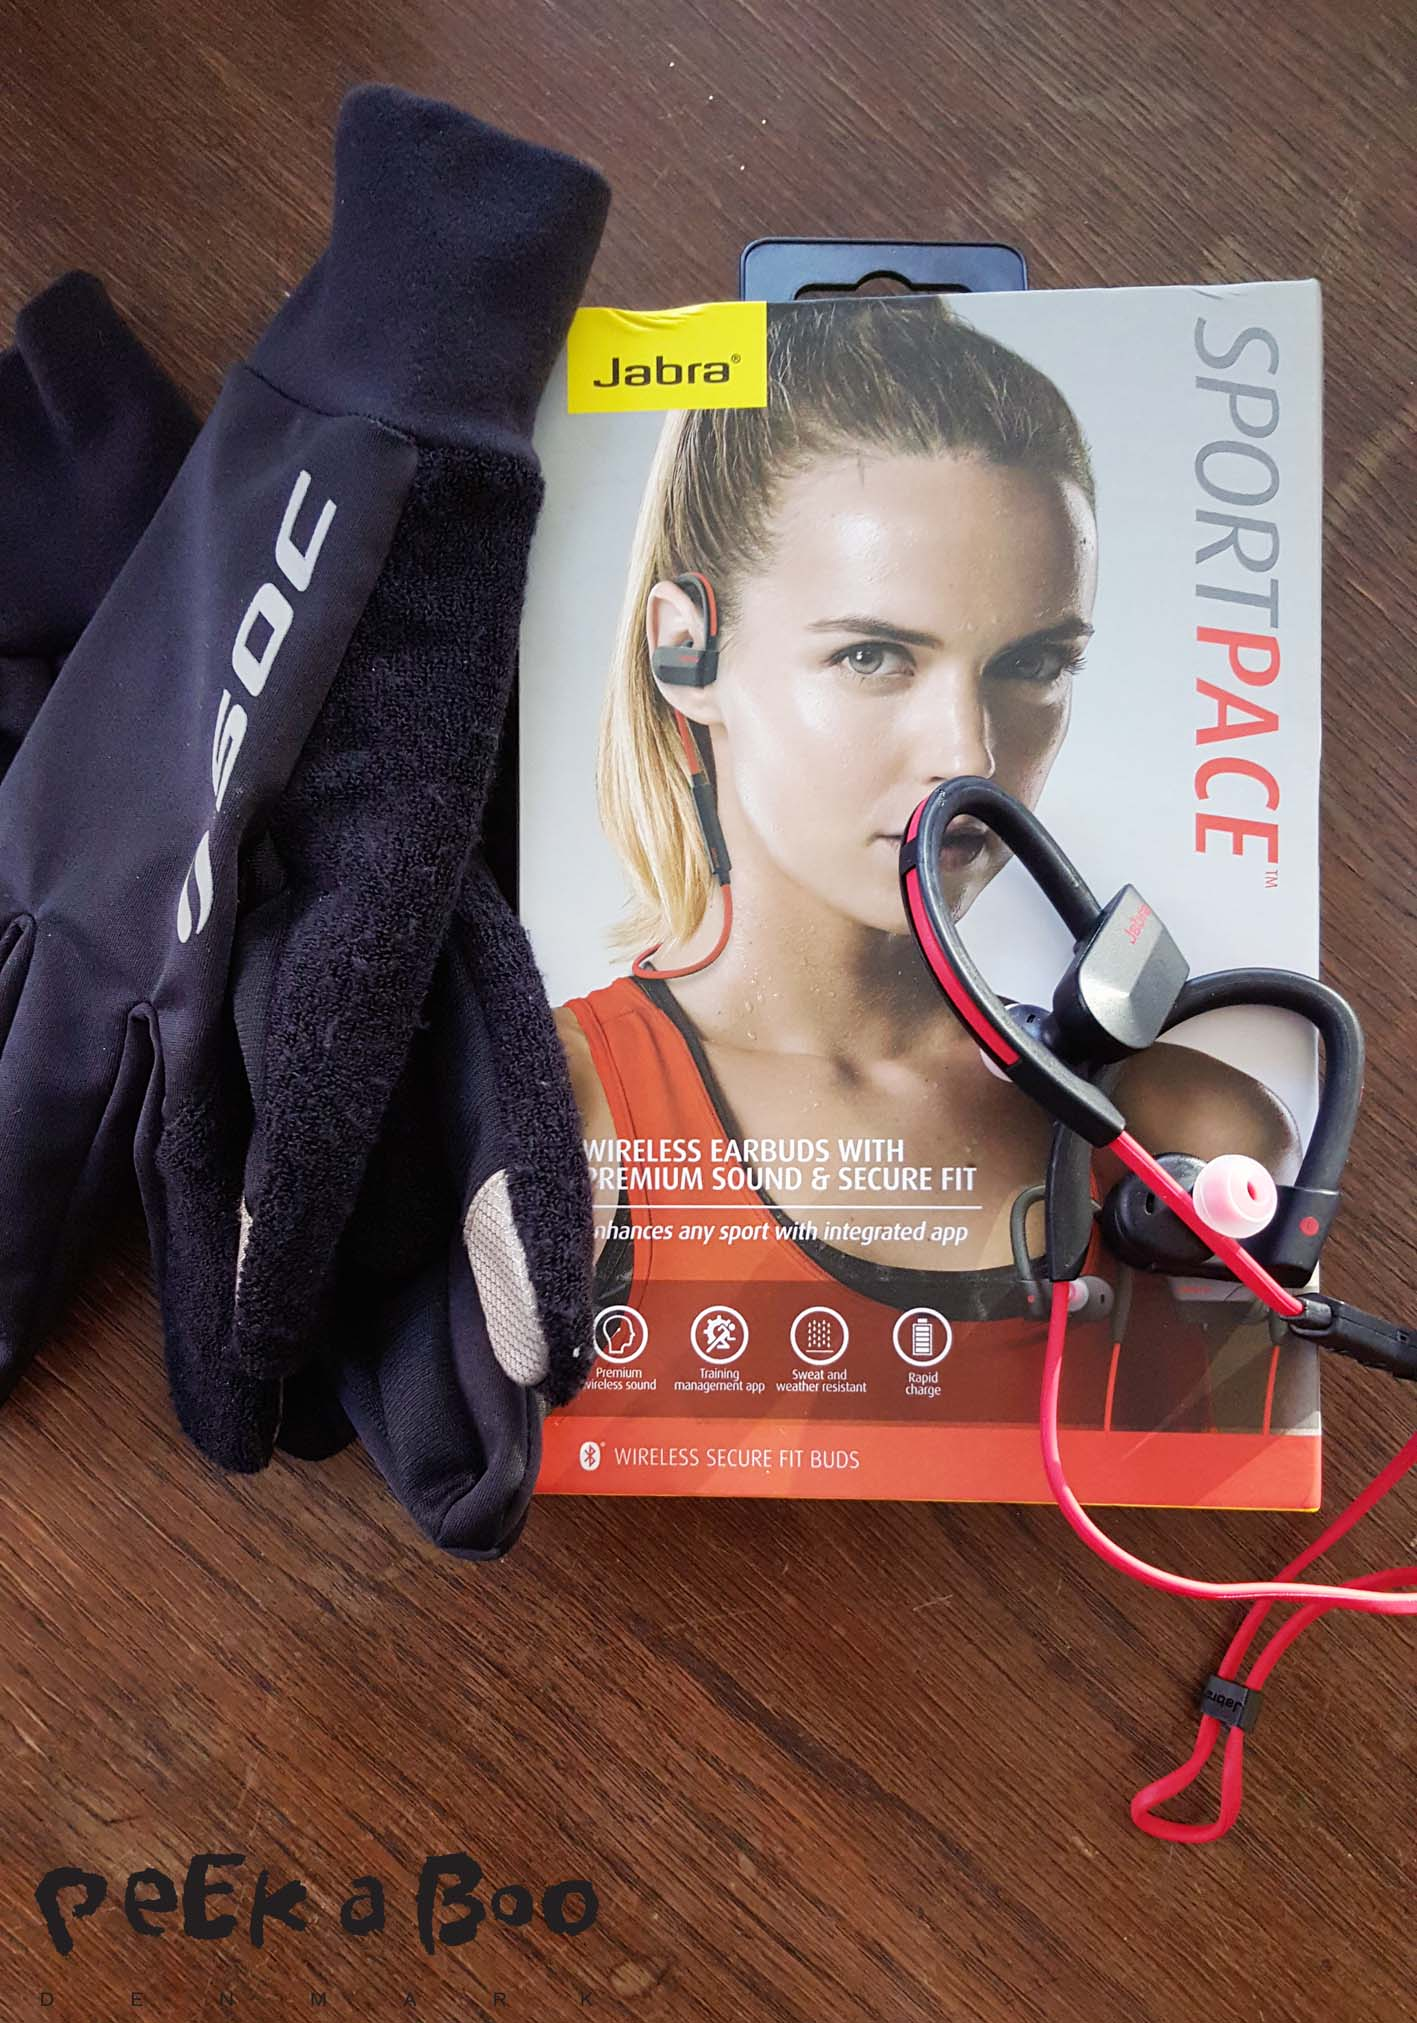 Jabra sport pace Wireless earbuds and soc gloves that can control my Samsung S6 Edge without taking them off.